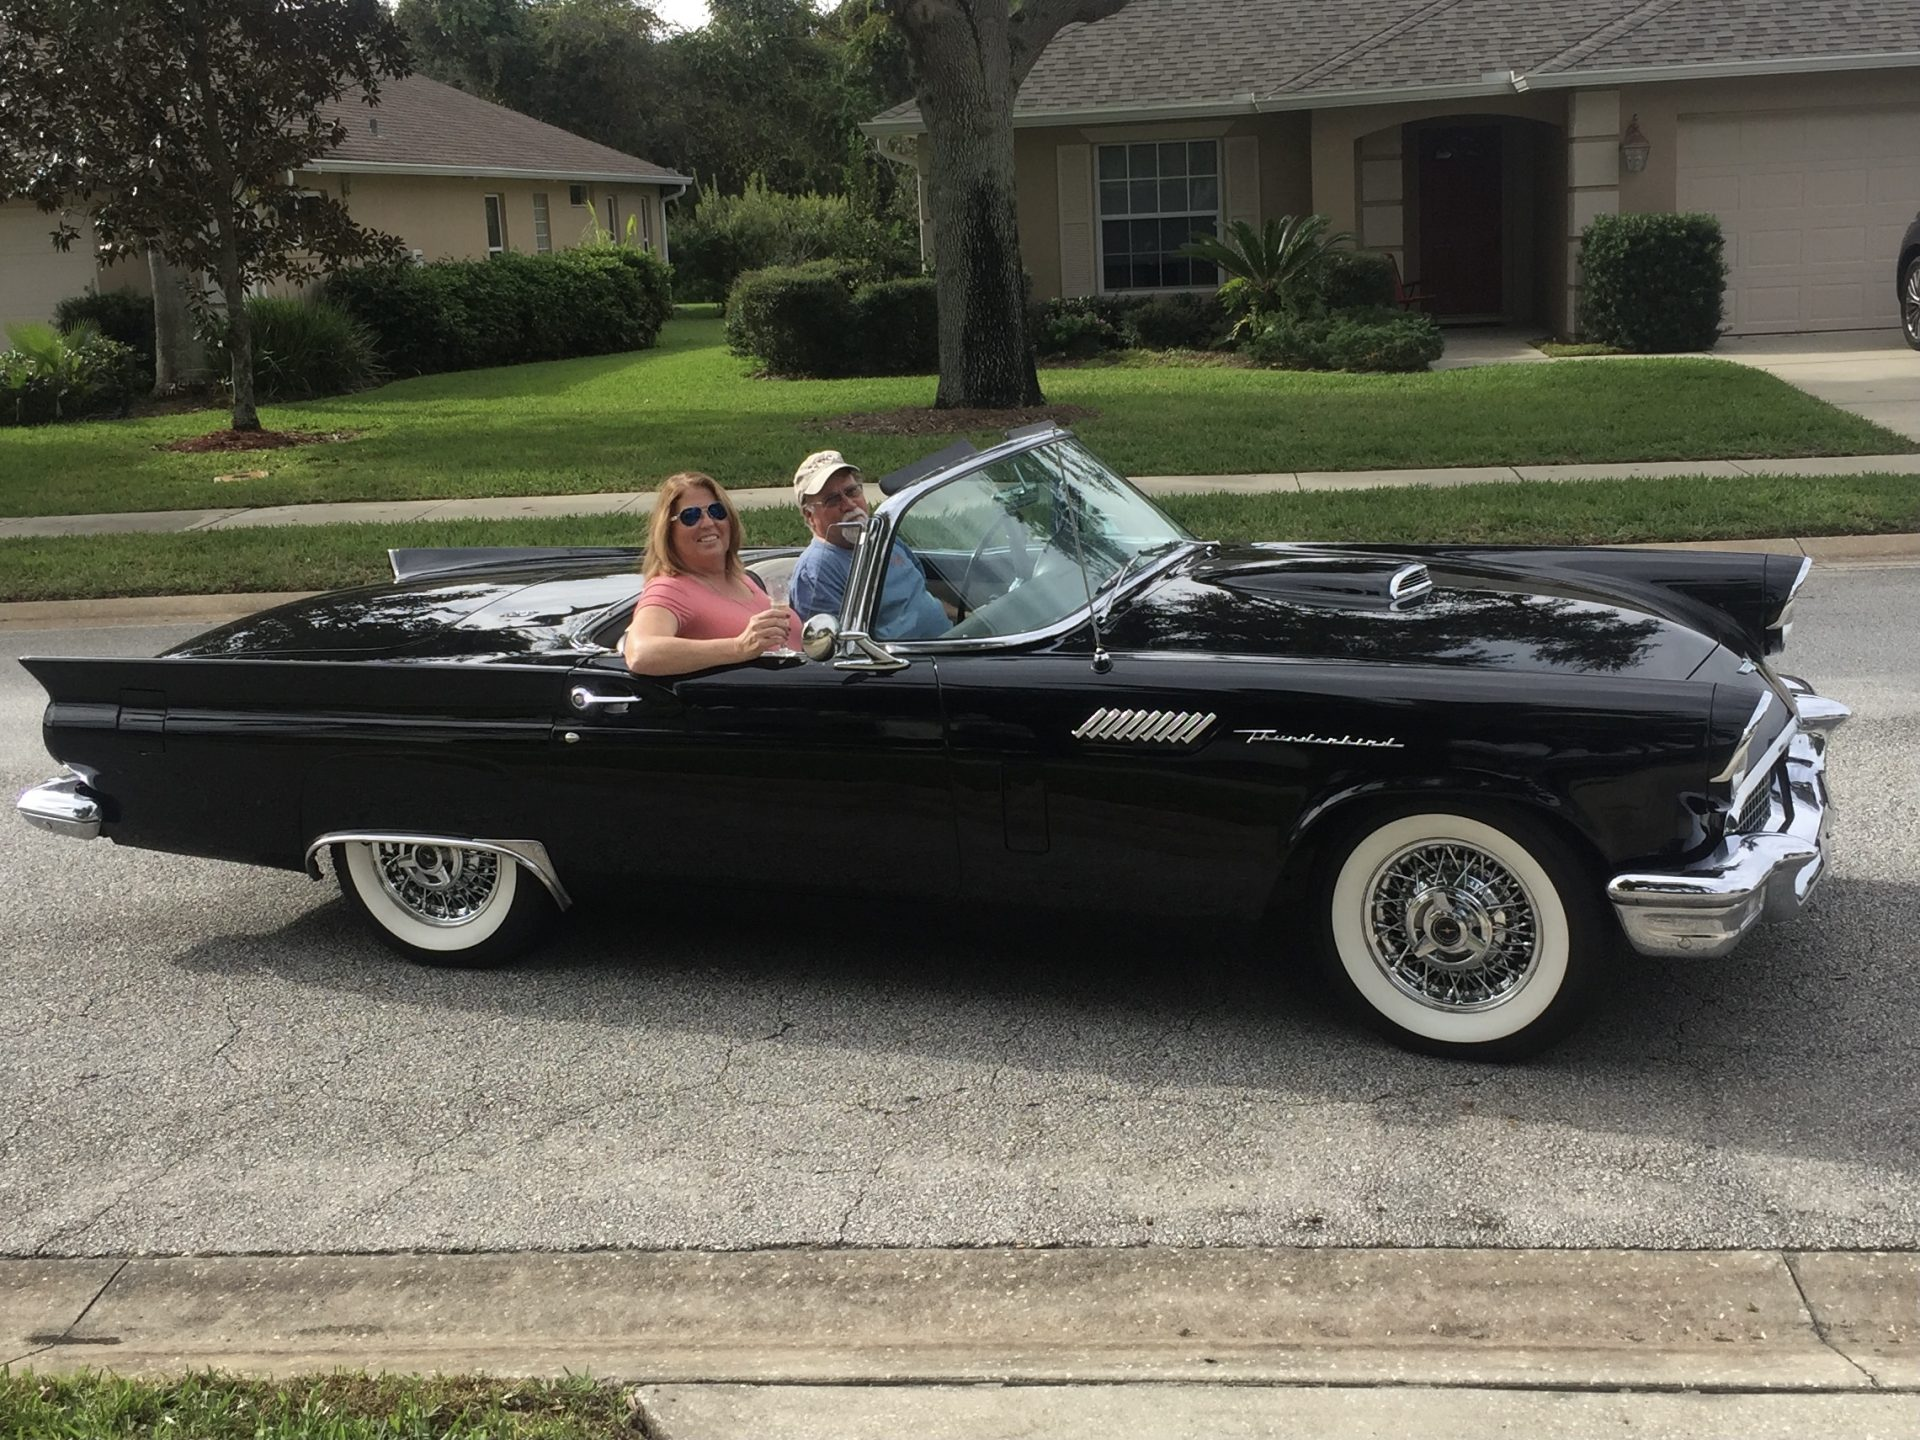 Riding in the T-Bird with Valerie